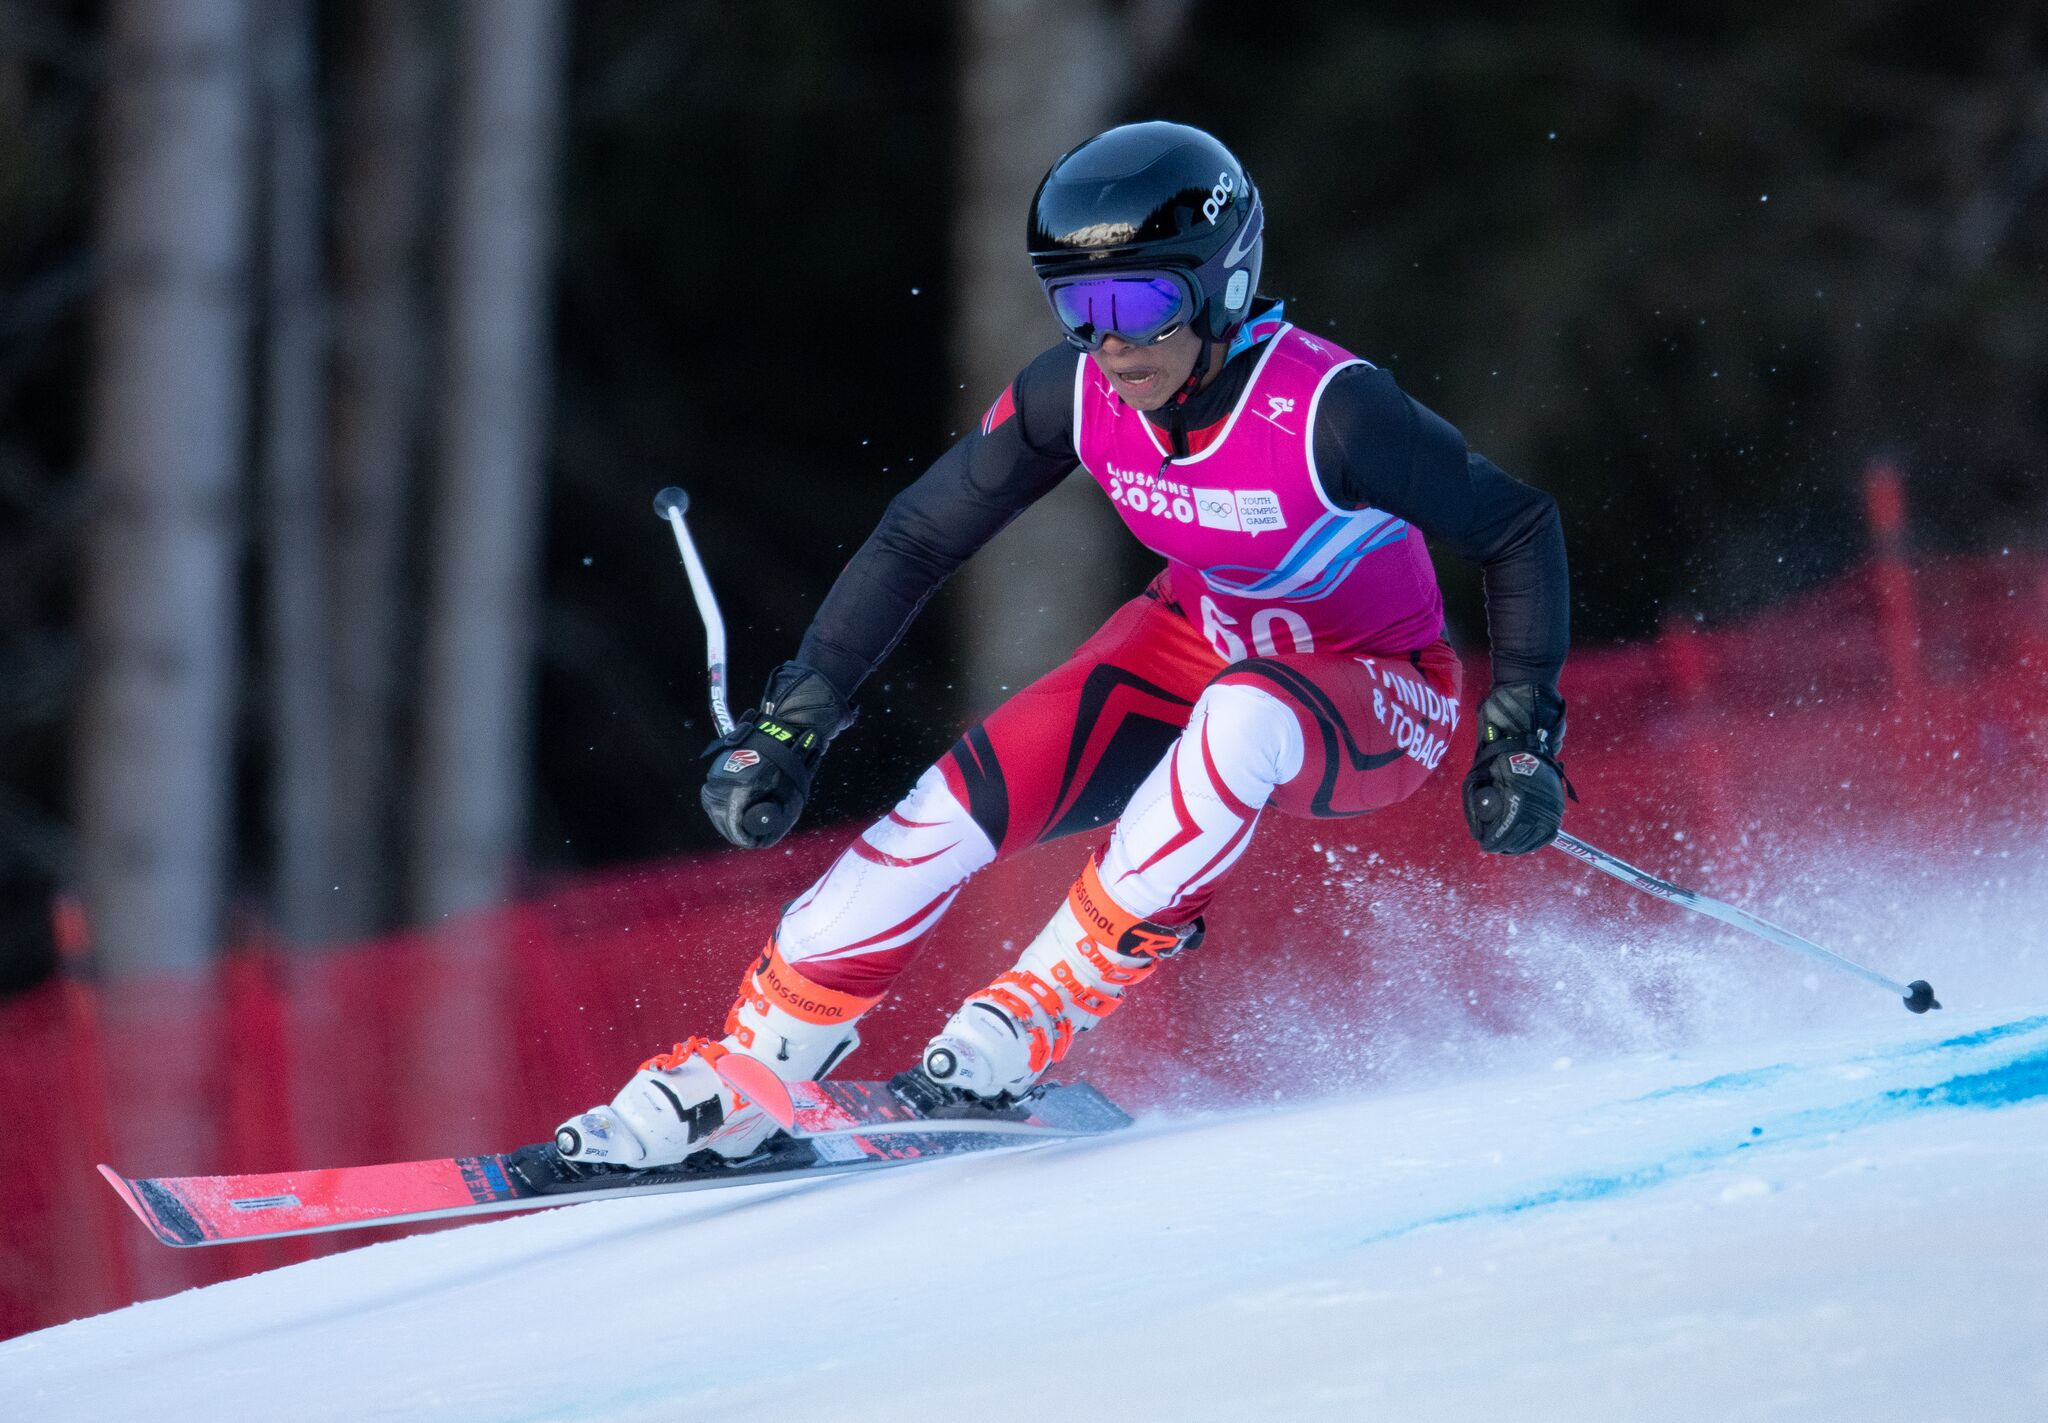 Abigail Vieira, Alpine Skiing – Alpine Combined Slalom Competition | Photo Credits: Veronika Muehlhofer @www.ttoc.org